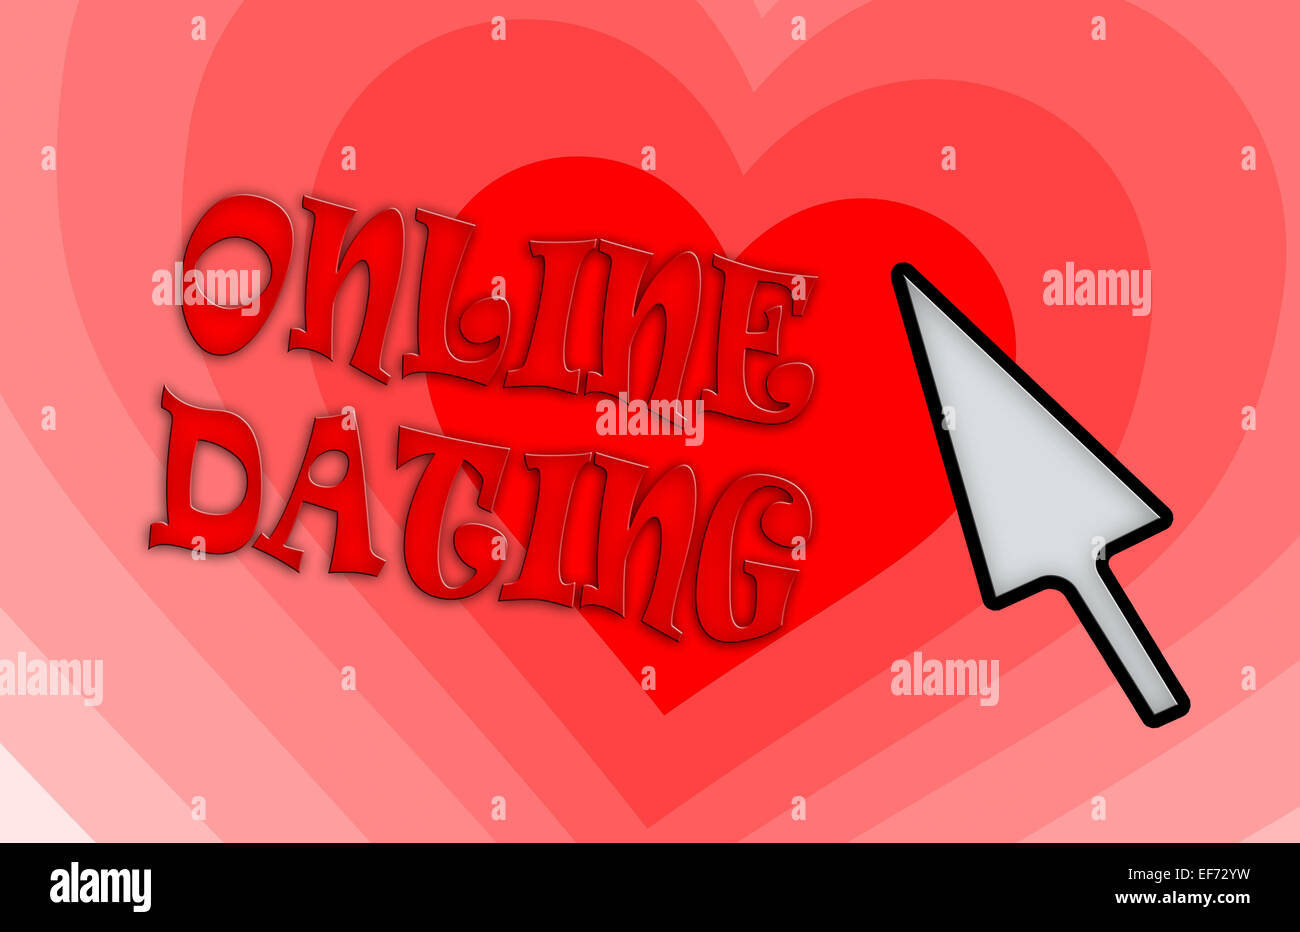 Heart shape backgound - Concept of dating - red - Stock Image